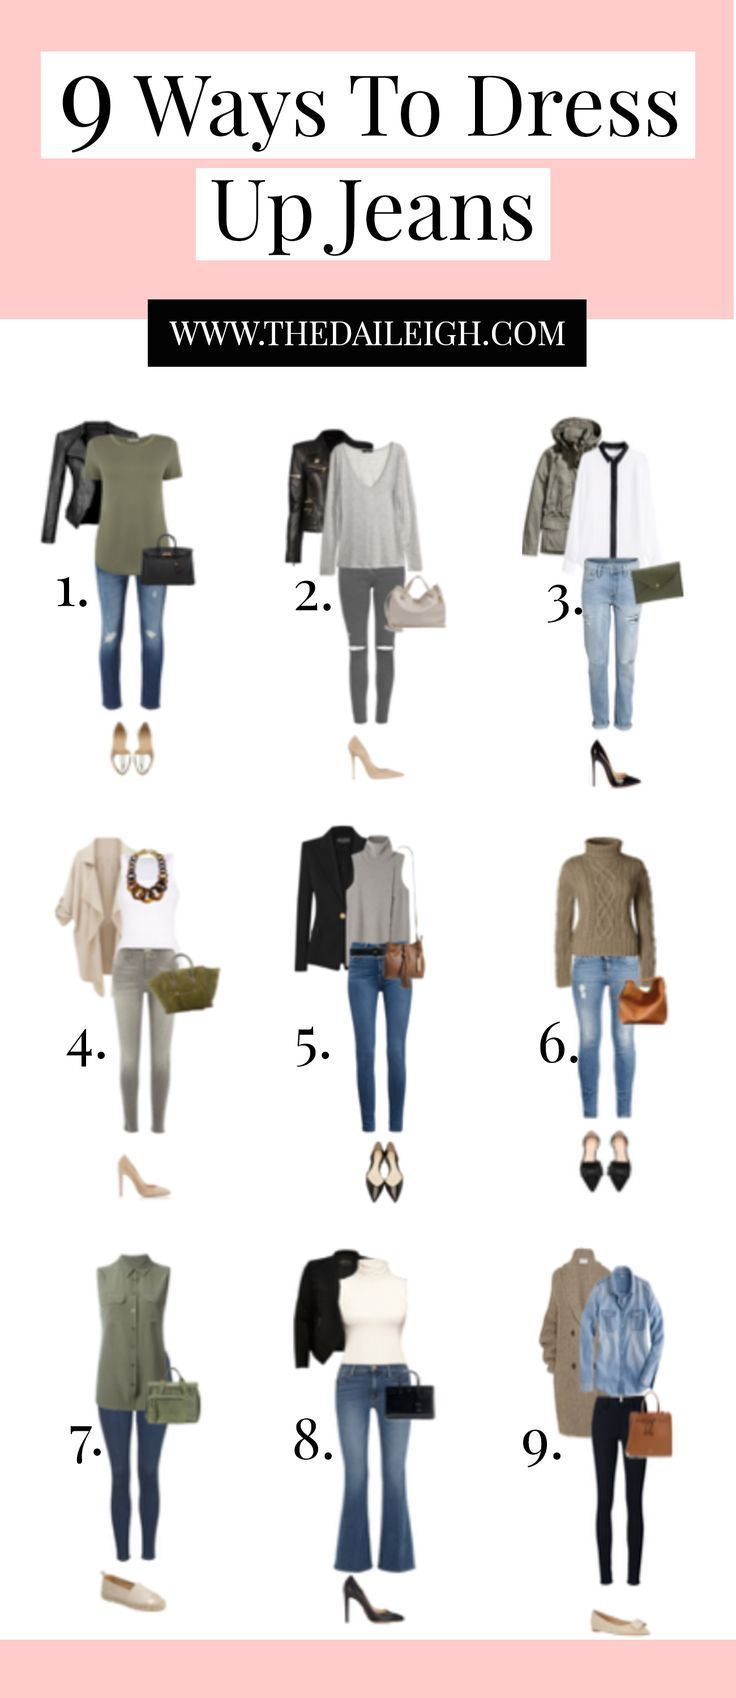 How to dress over 40, how to dress in your 40s, How to dress in the 50s and 39s